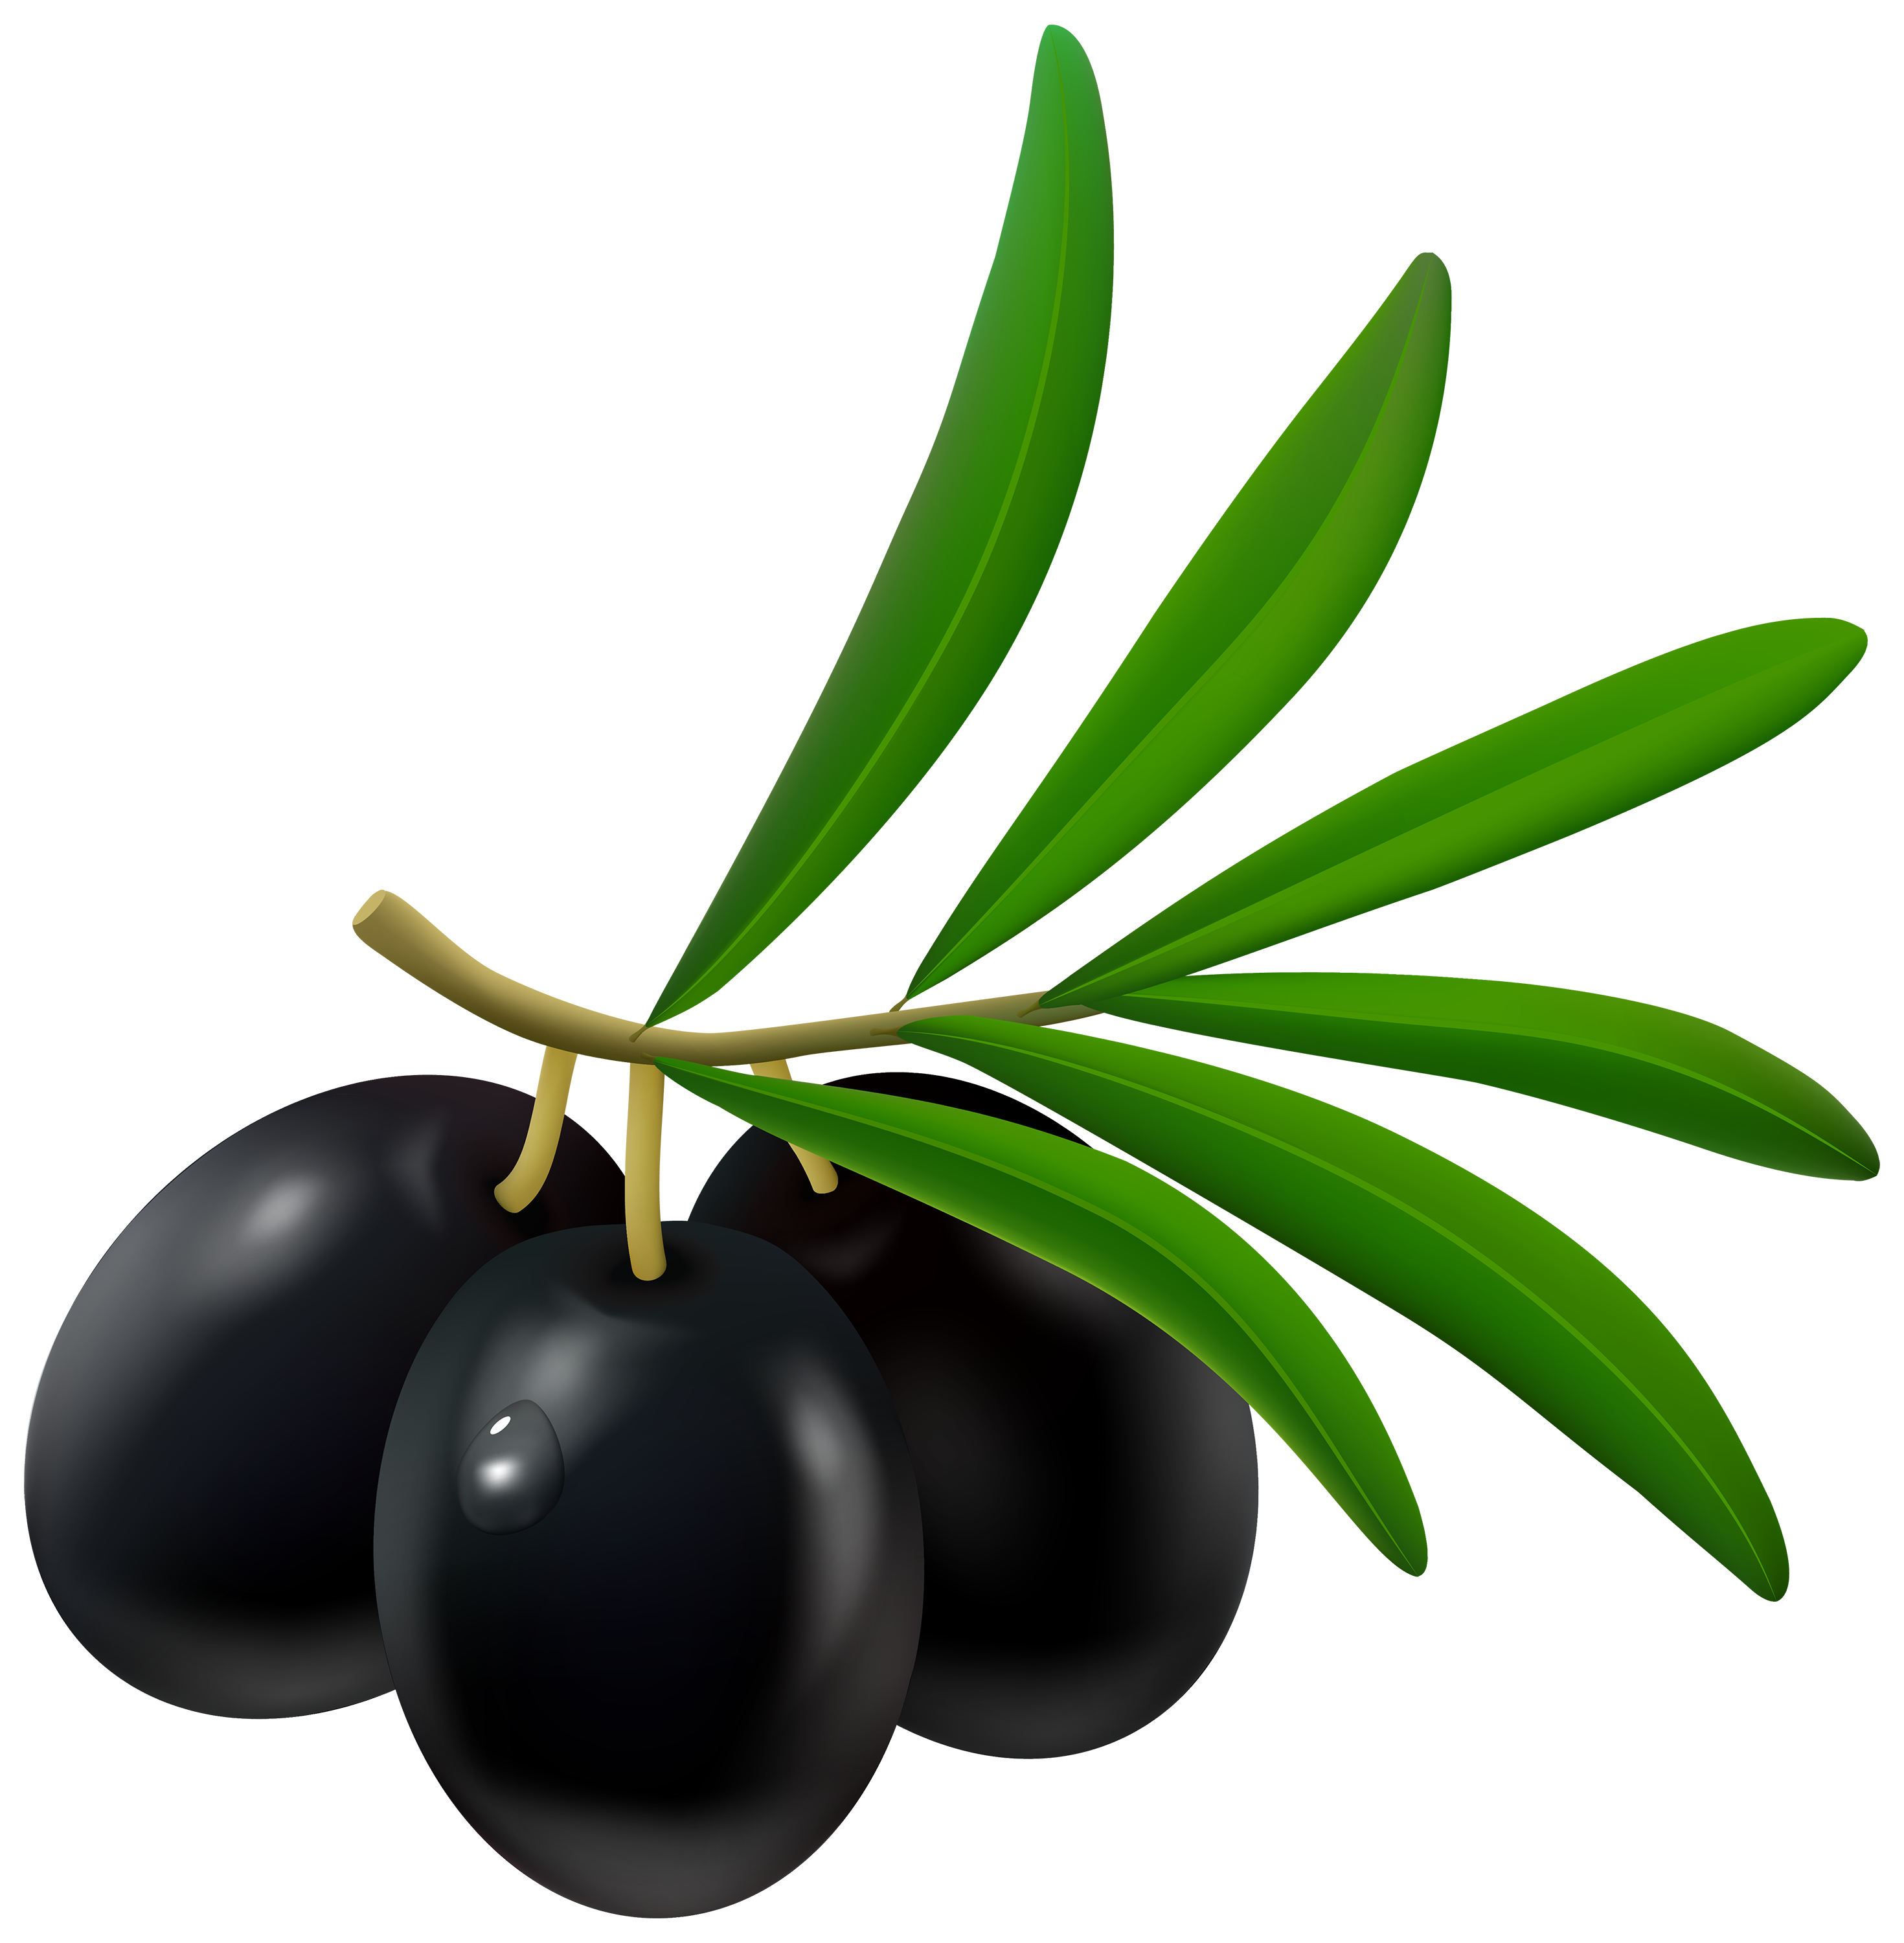 clip art freeuse library Black png best web. Olive clipart